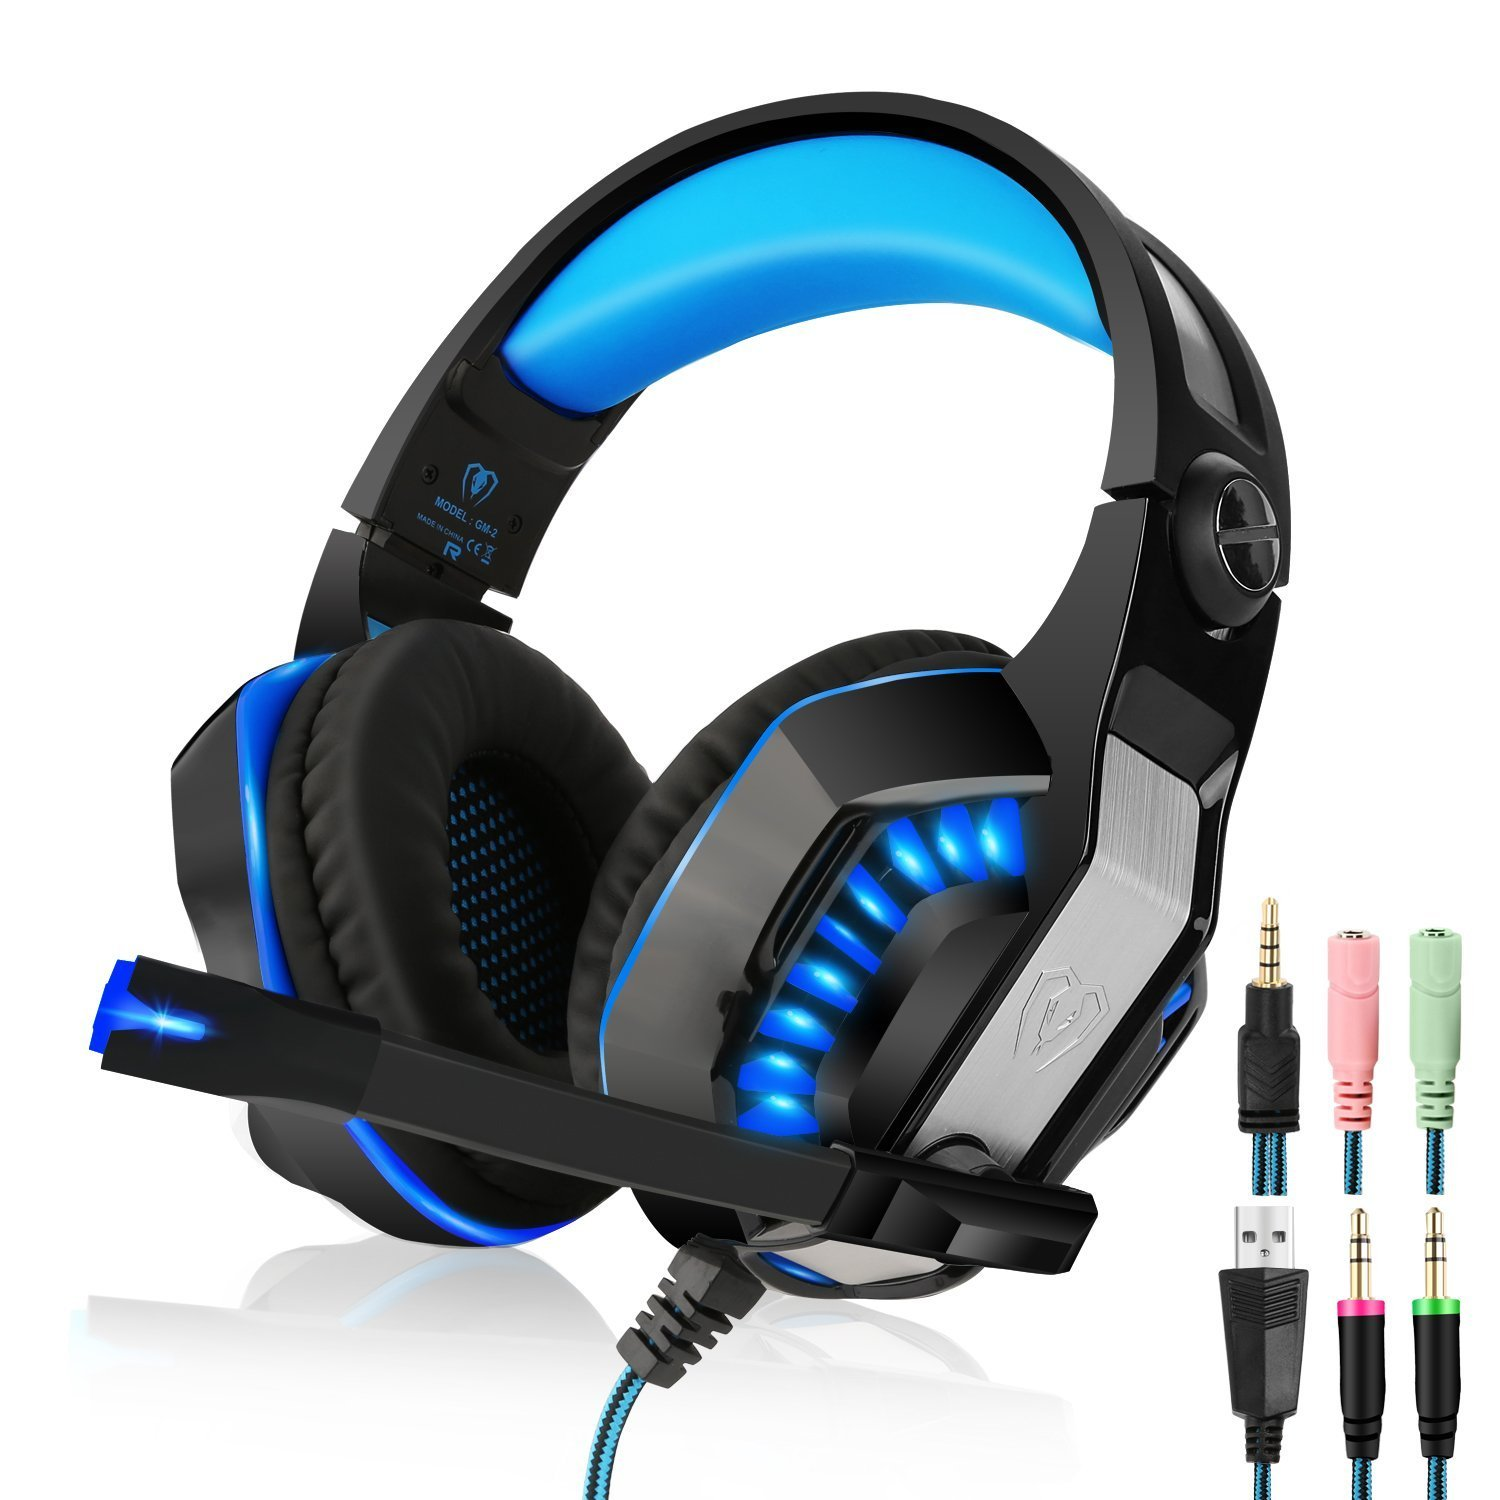 Beexcellent Gaming Headset with Microphone, LED Lights and Volume Control, GM-2 3.5mm Over Ear Headphones for Video Games Devices, PC, Laptops, Smartphones by Beexcellent